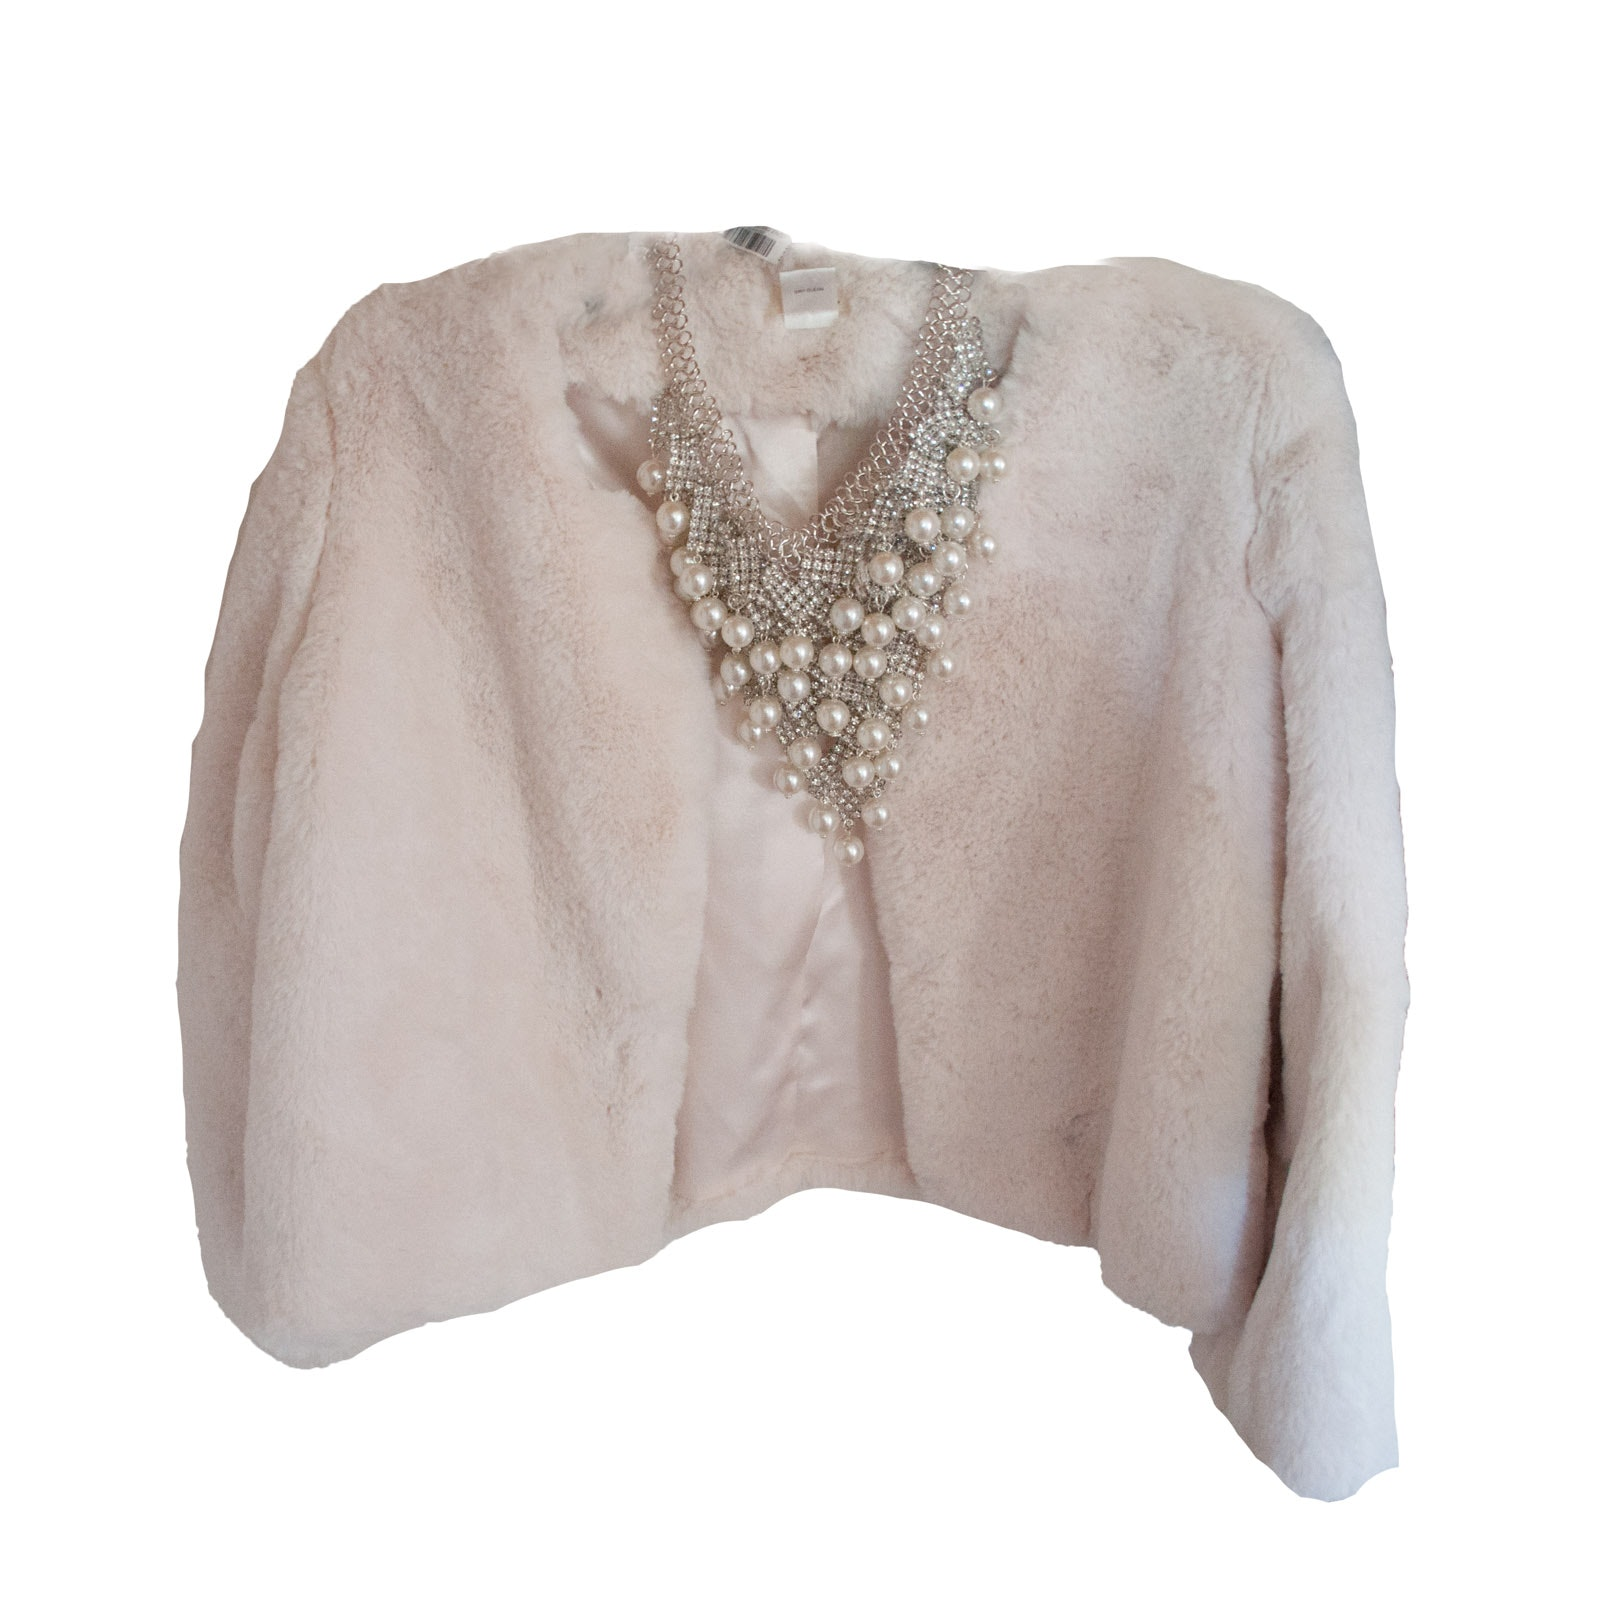 Ruyi Faux Fur Evening Jacket with Necklace